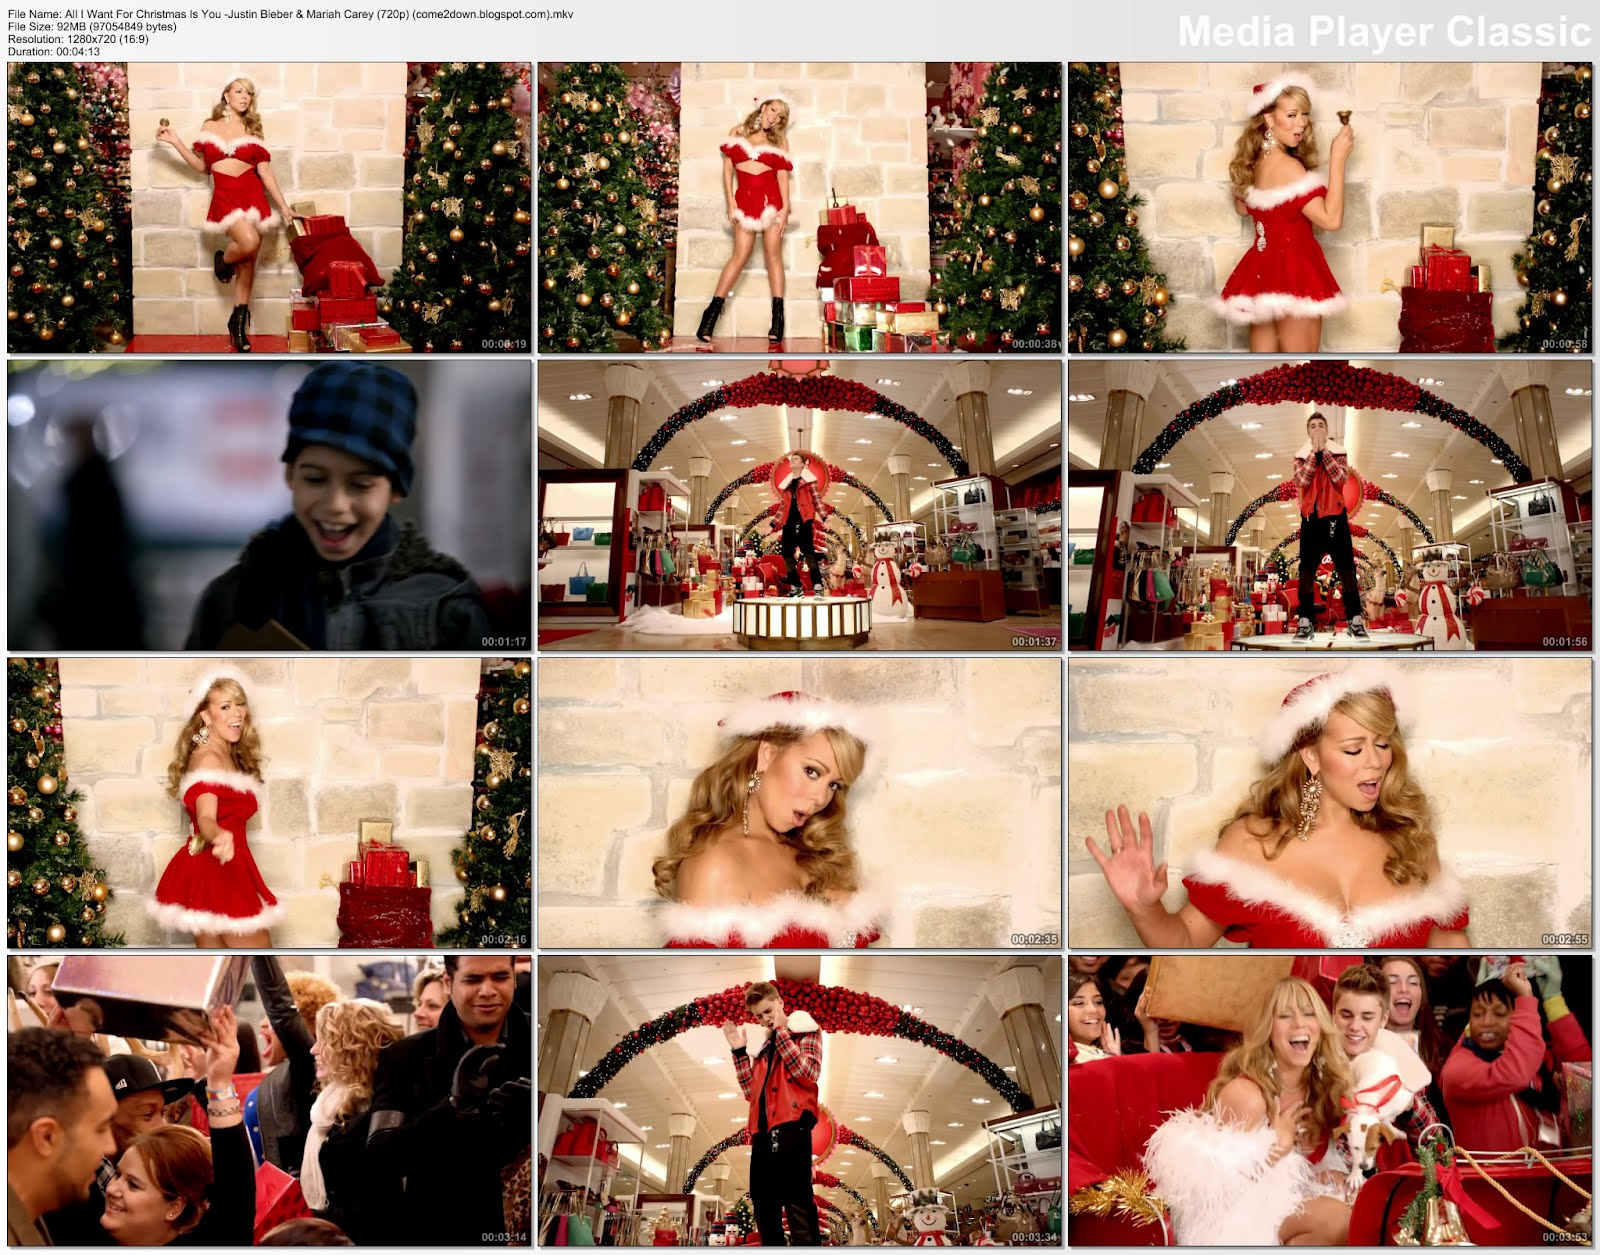 Mariah carey justin bieber all i want for christmas is you download ...